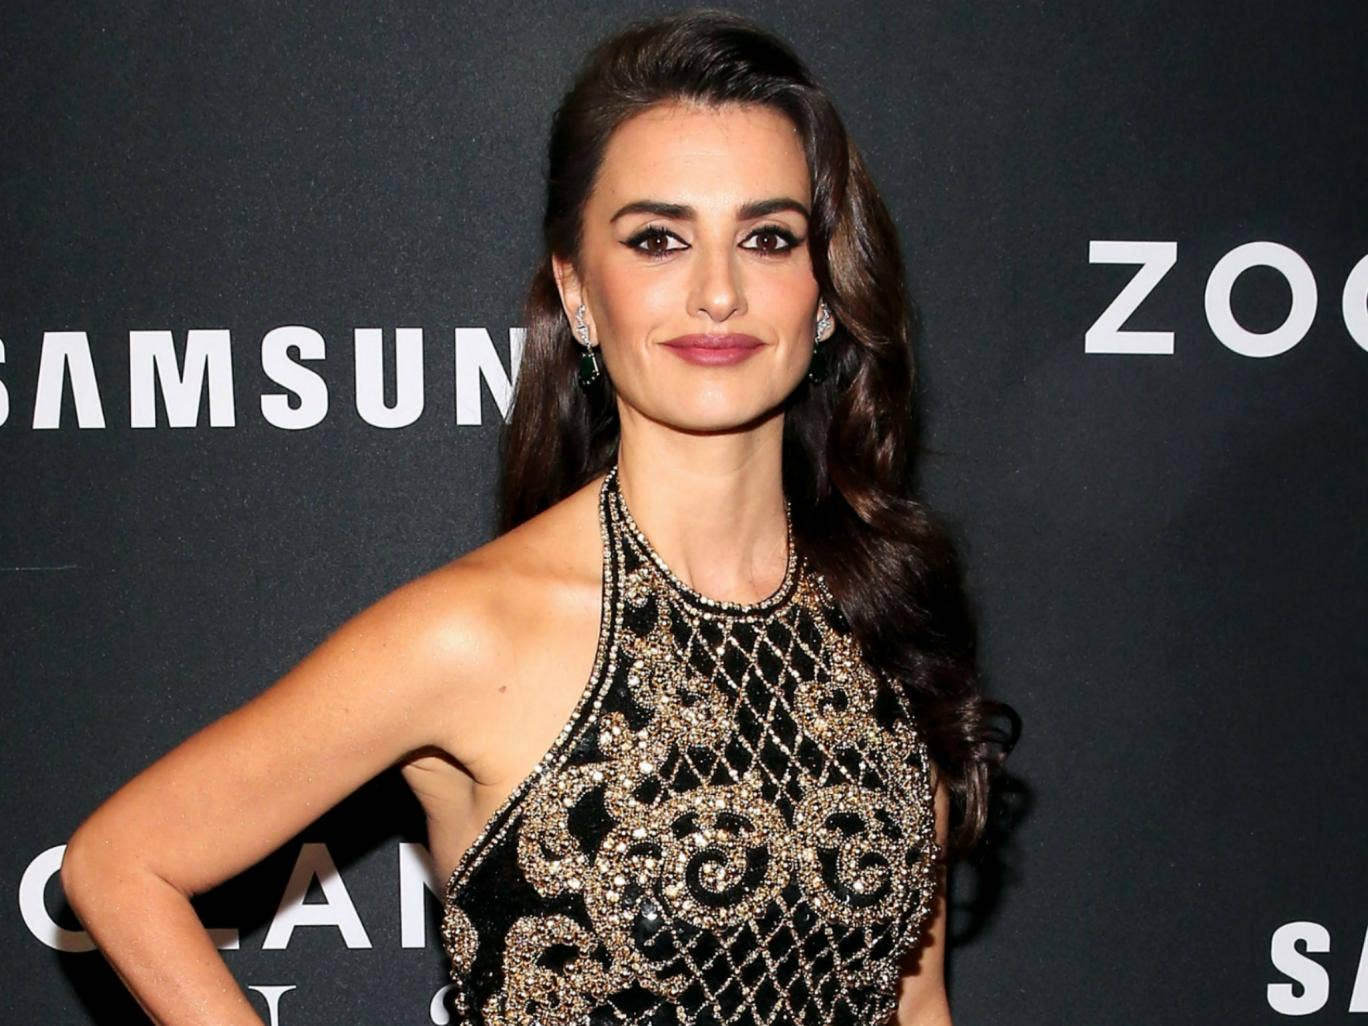 Mortified Penelope Cruz is asked about her 'ugly feet' in cringeworthy interview